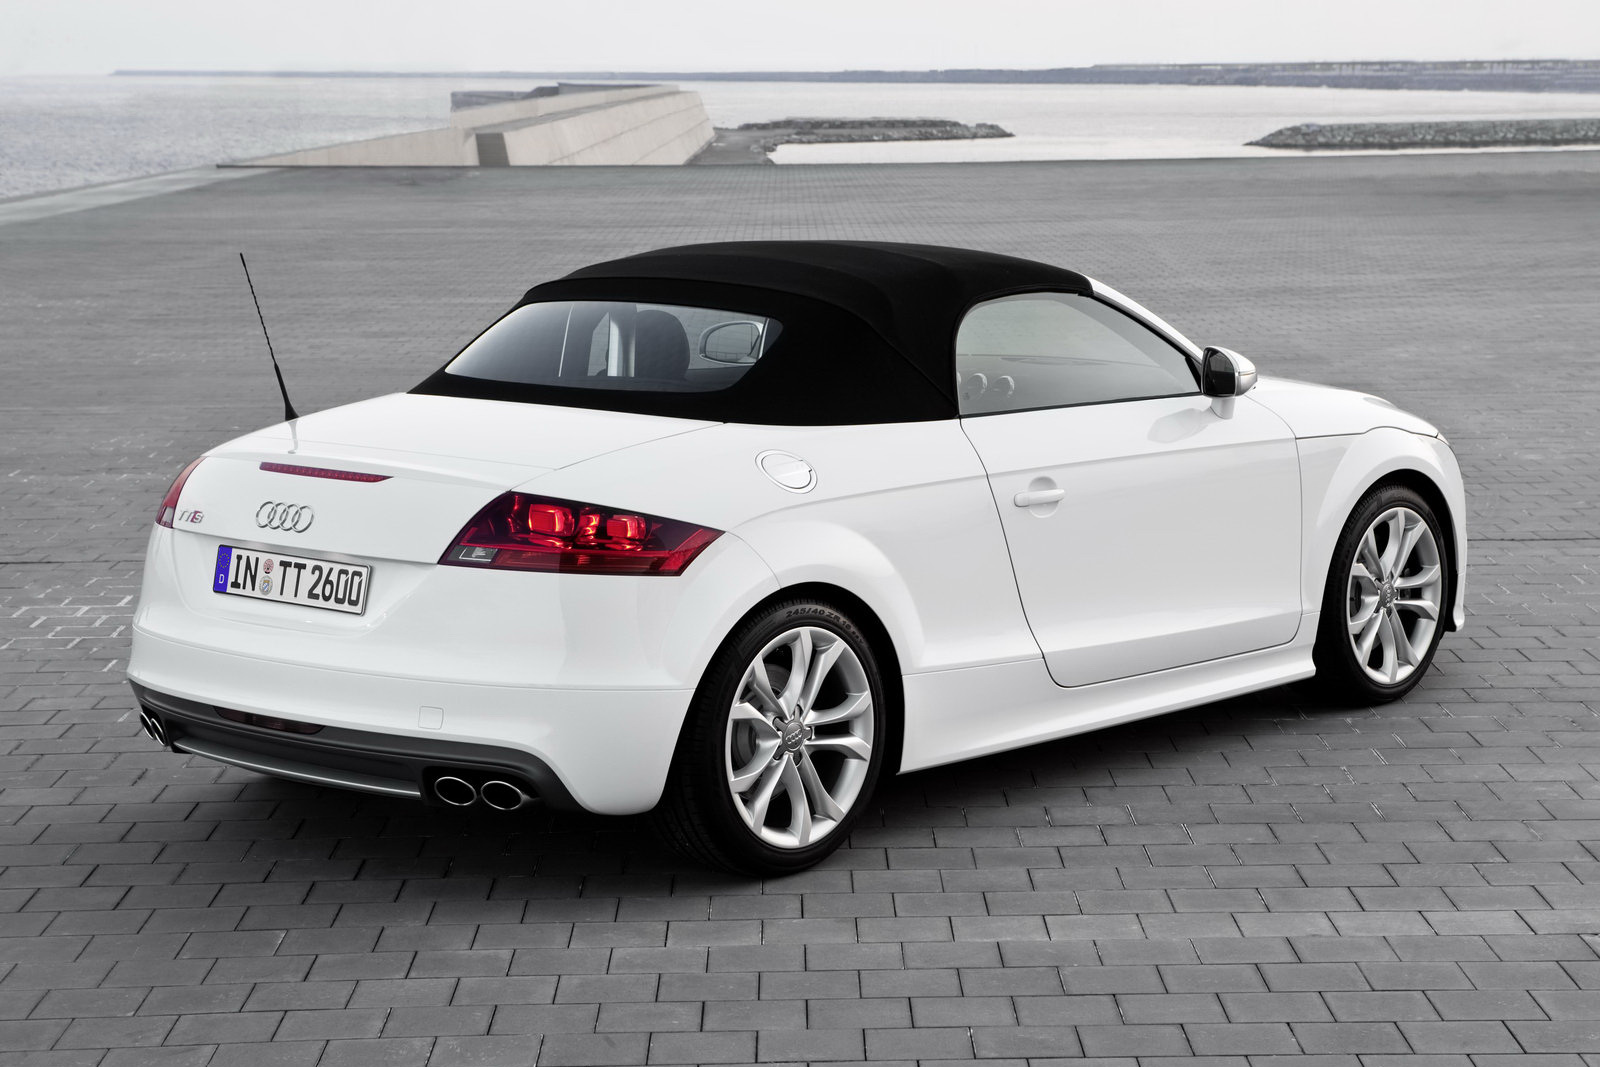 2011 audi tt coupe and roadster range facelifted new 211hp 2 0 tfsi carscoops. Black Bedroom Furniture Sets. Home Design Ideas